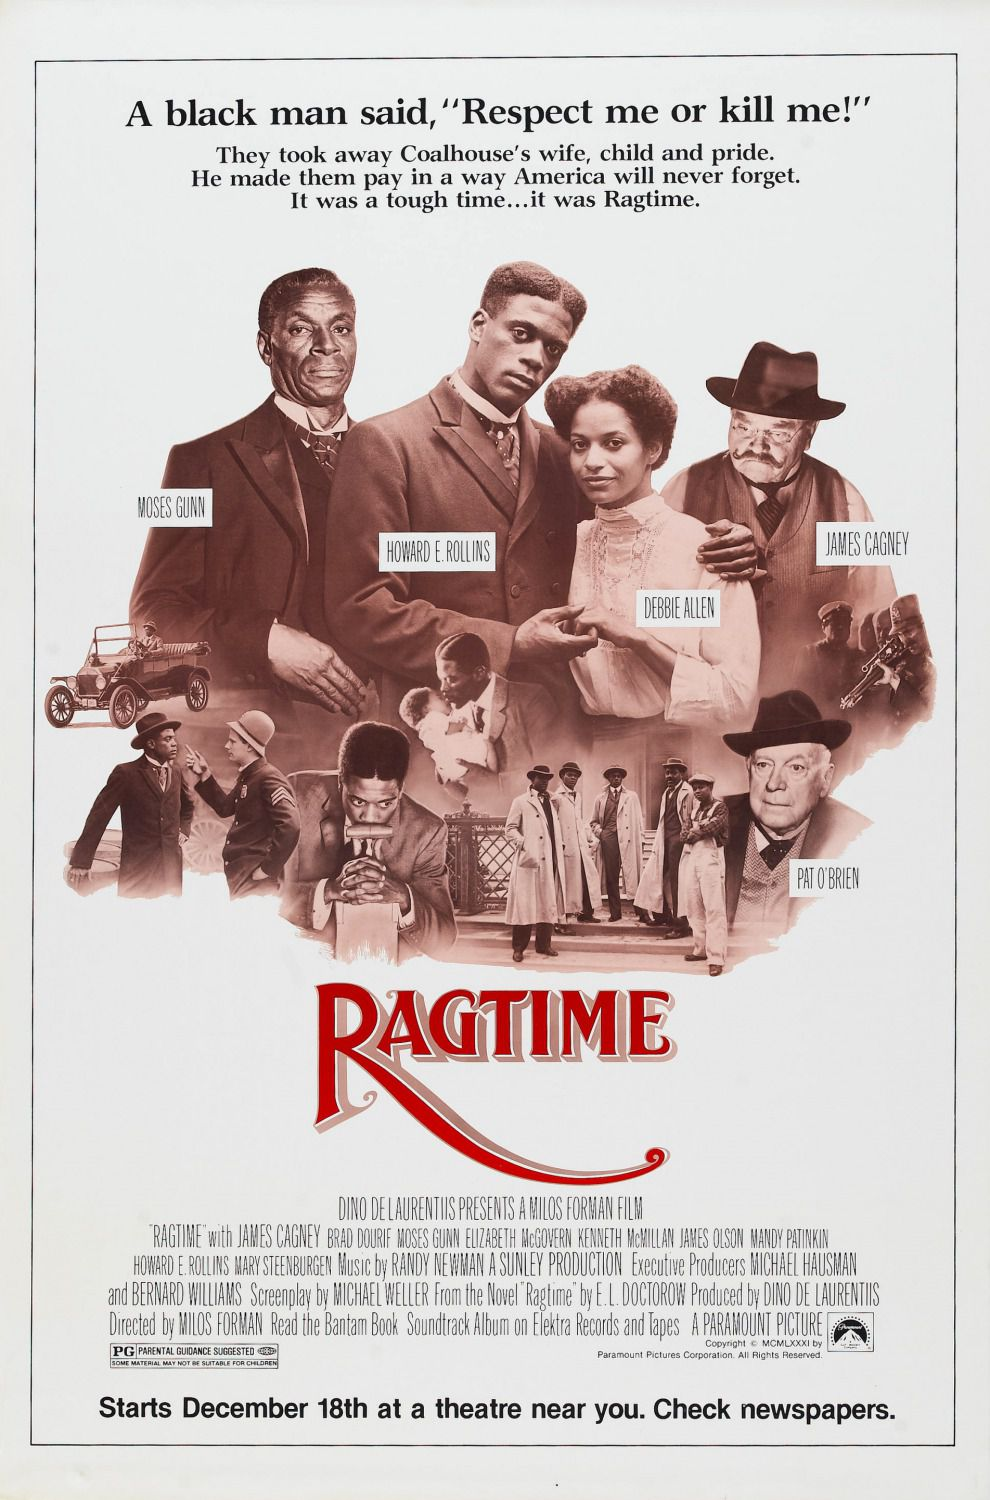 Ragtime (1981) - Cast: James Cagney, Brad Dourif, Moses Gunn, Elizabeth McGovern - film poster 80s